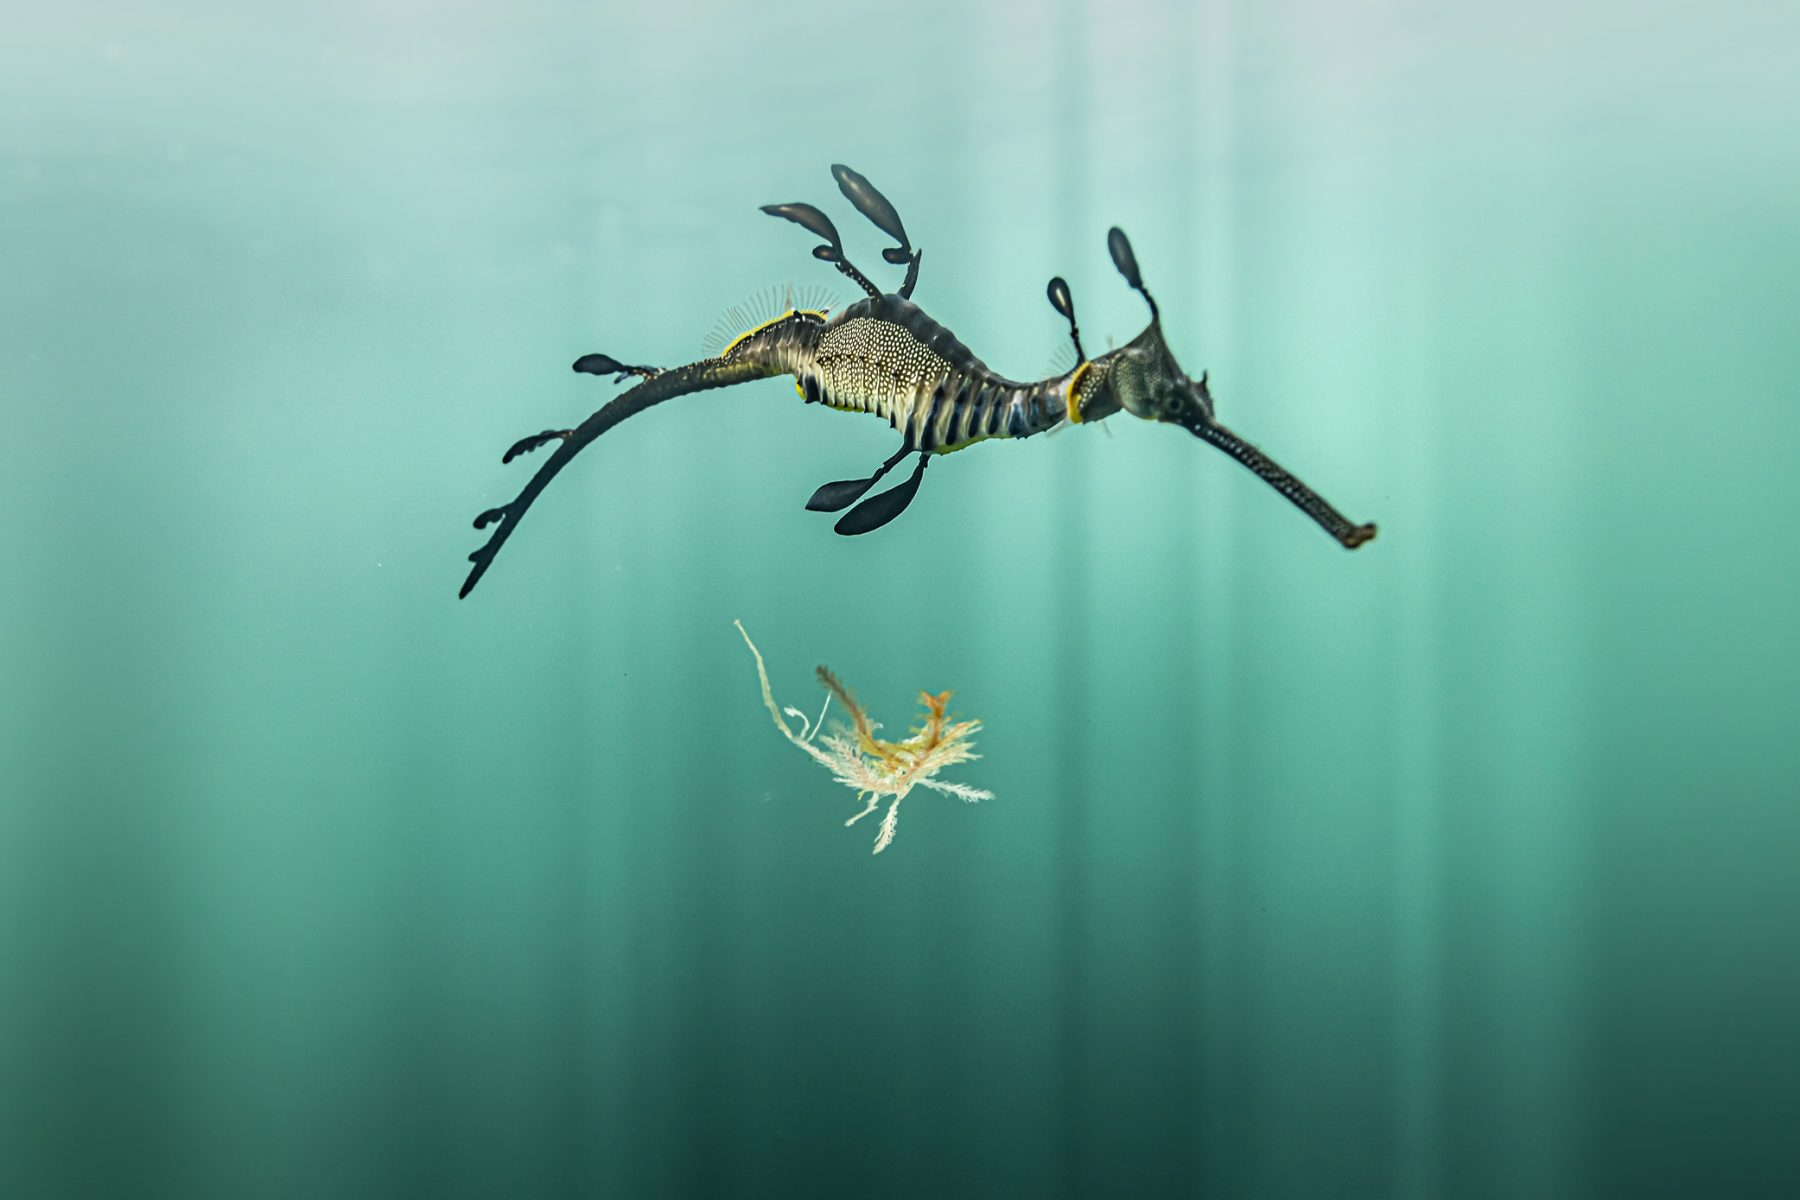 The Beauty of the Underwater World - Color underwater photography by Matthew Bagley. Sea Horse, Seaweed, Ocean, Marine